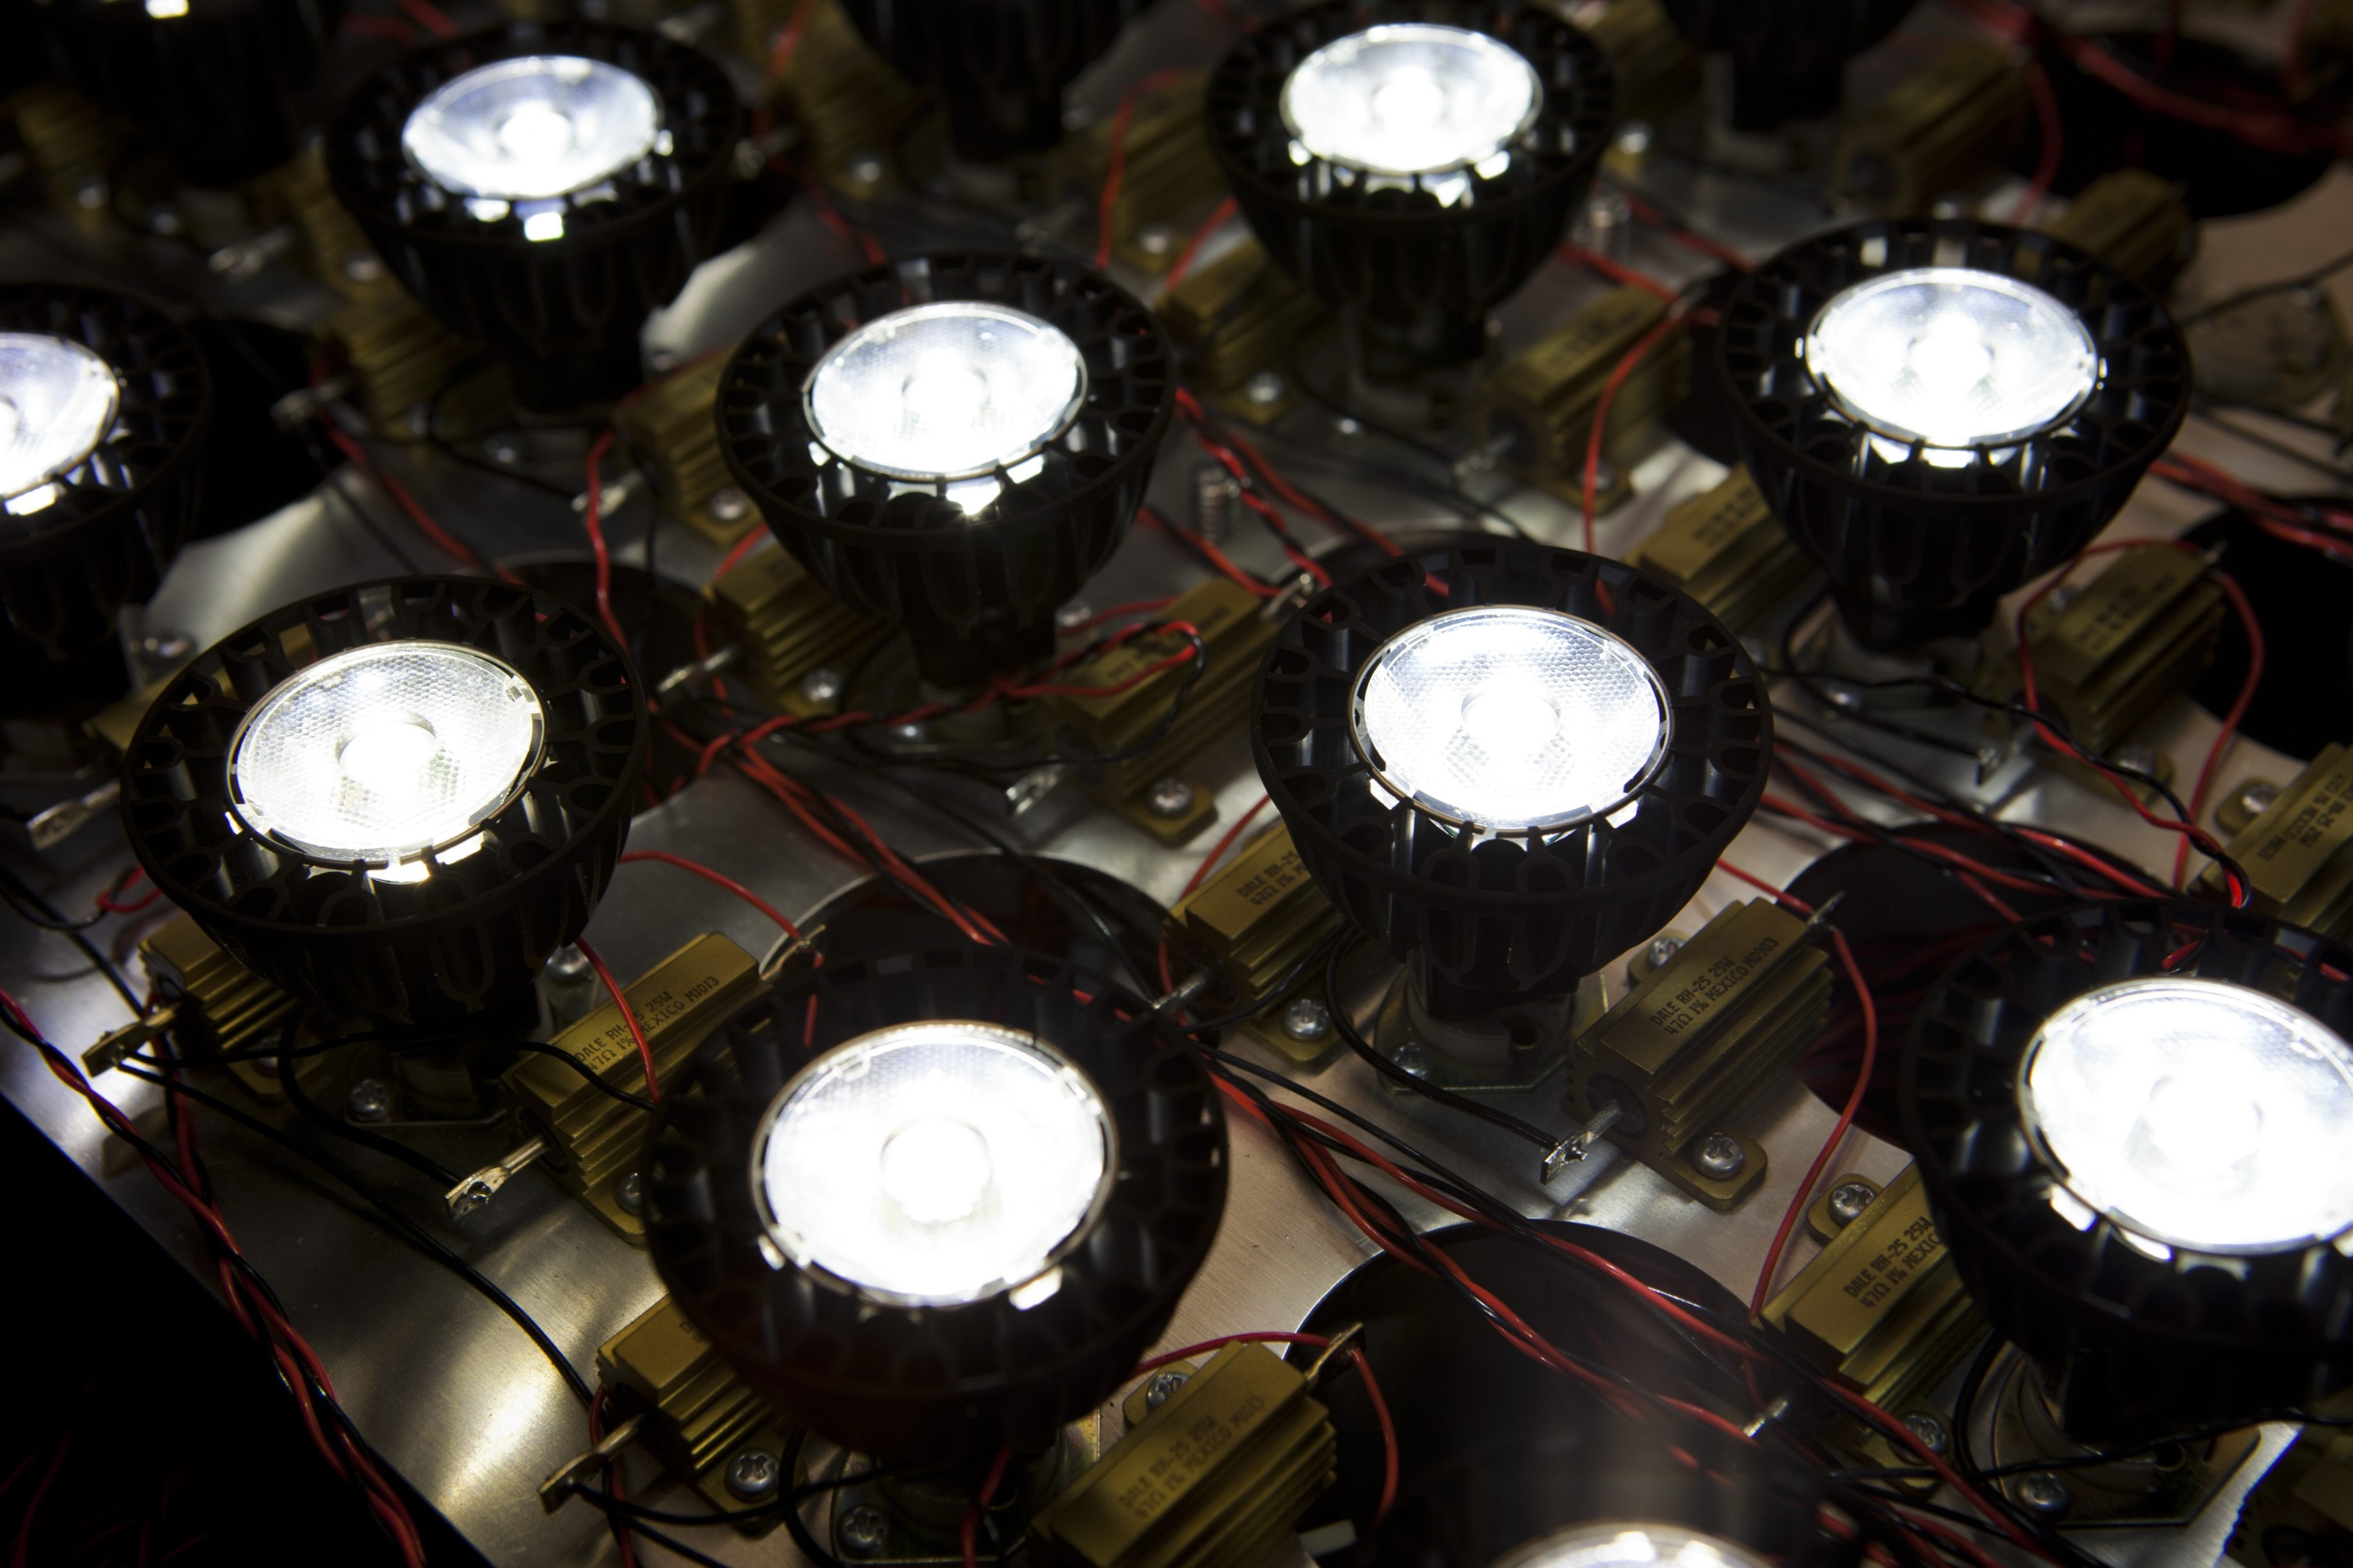 LED lights are tested in Soraa's laboratory. The company says its bulbs more closely match the light that comes from the sun.